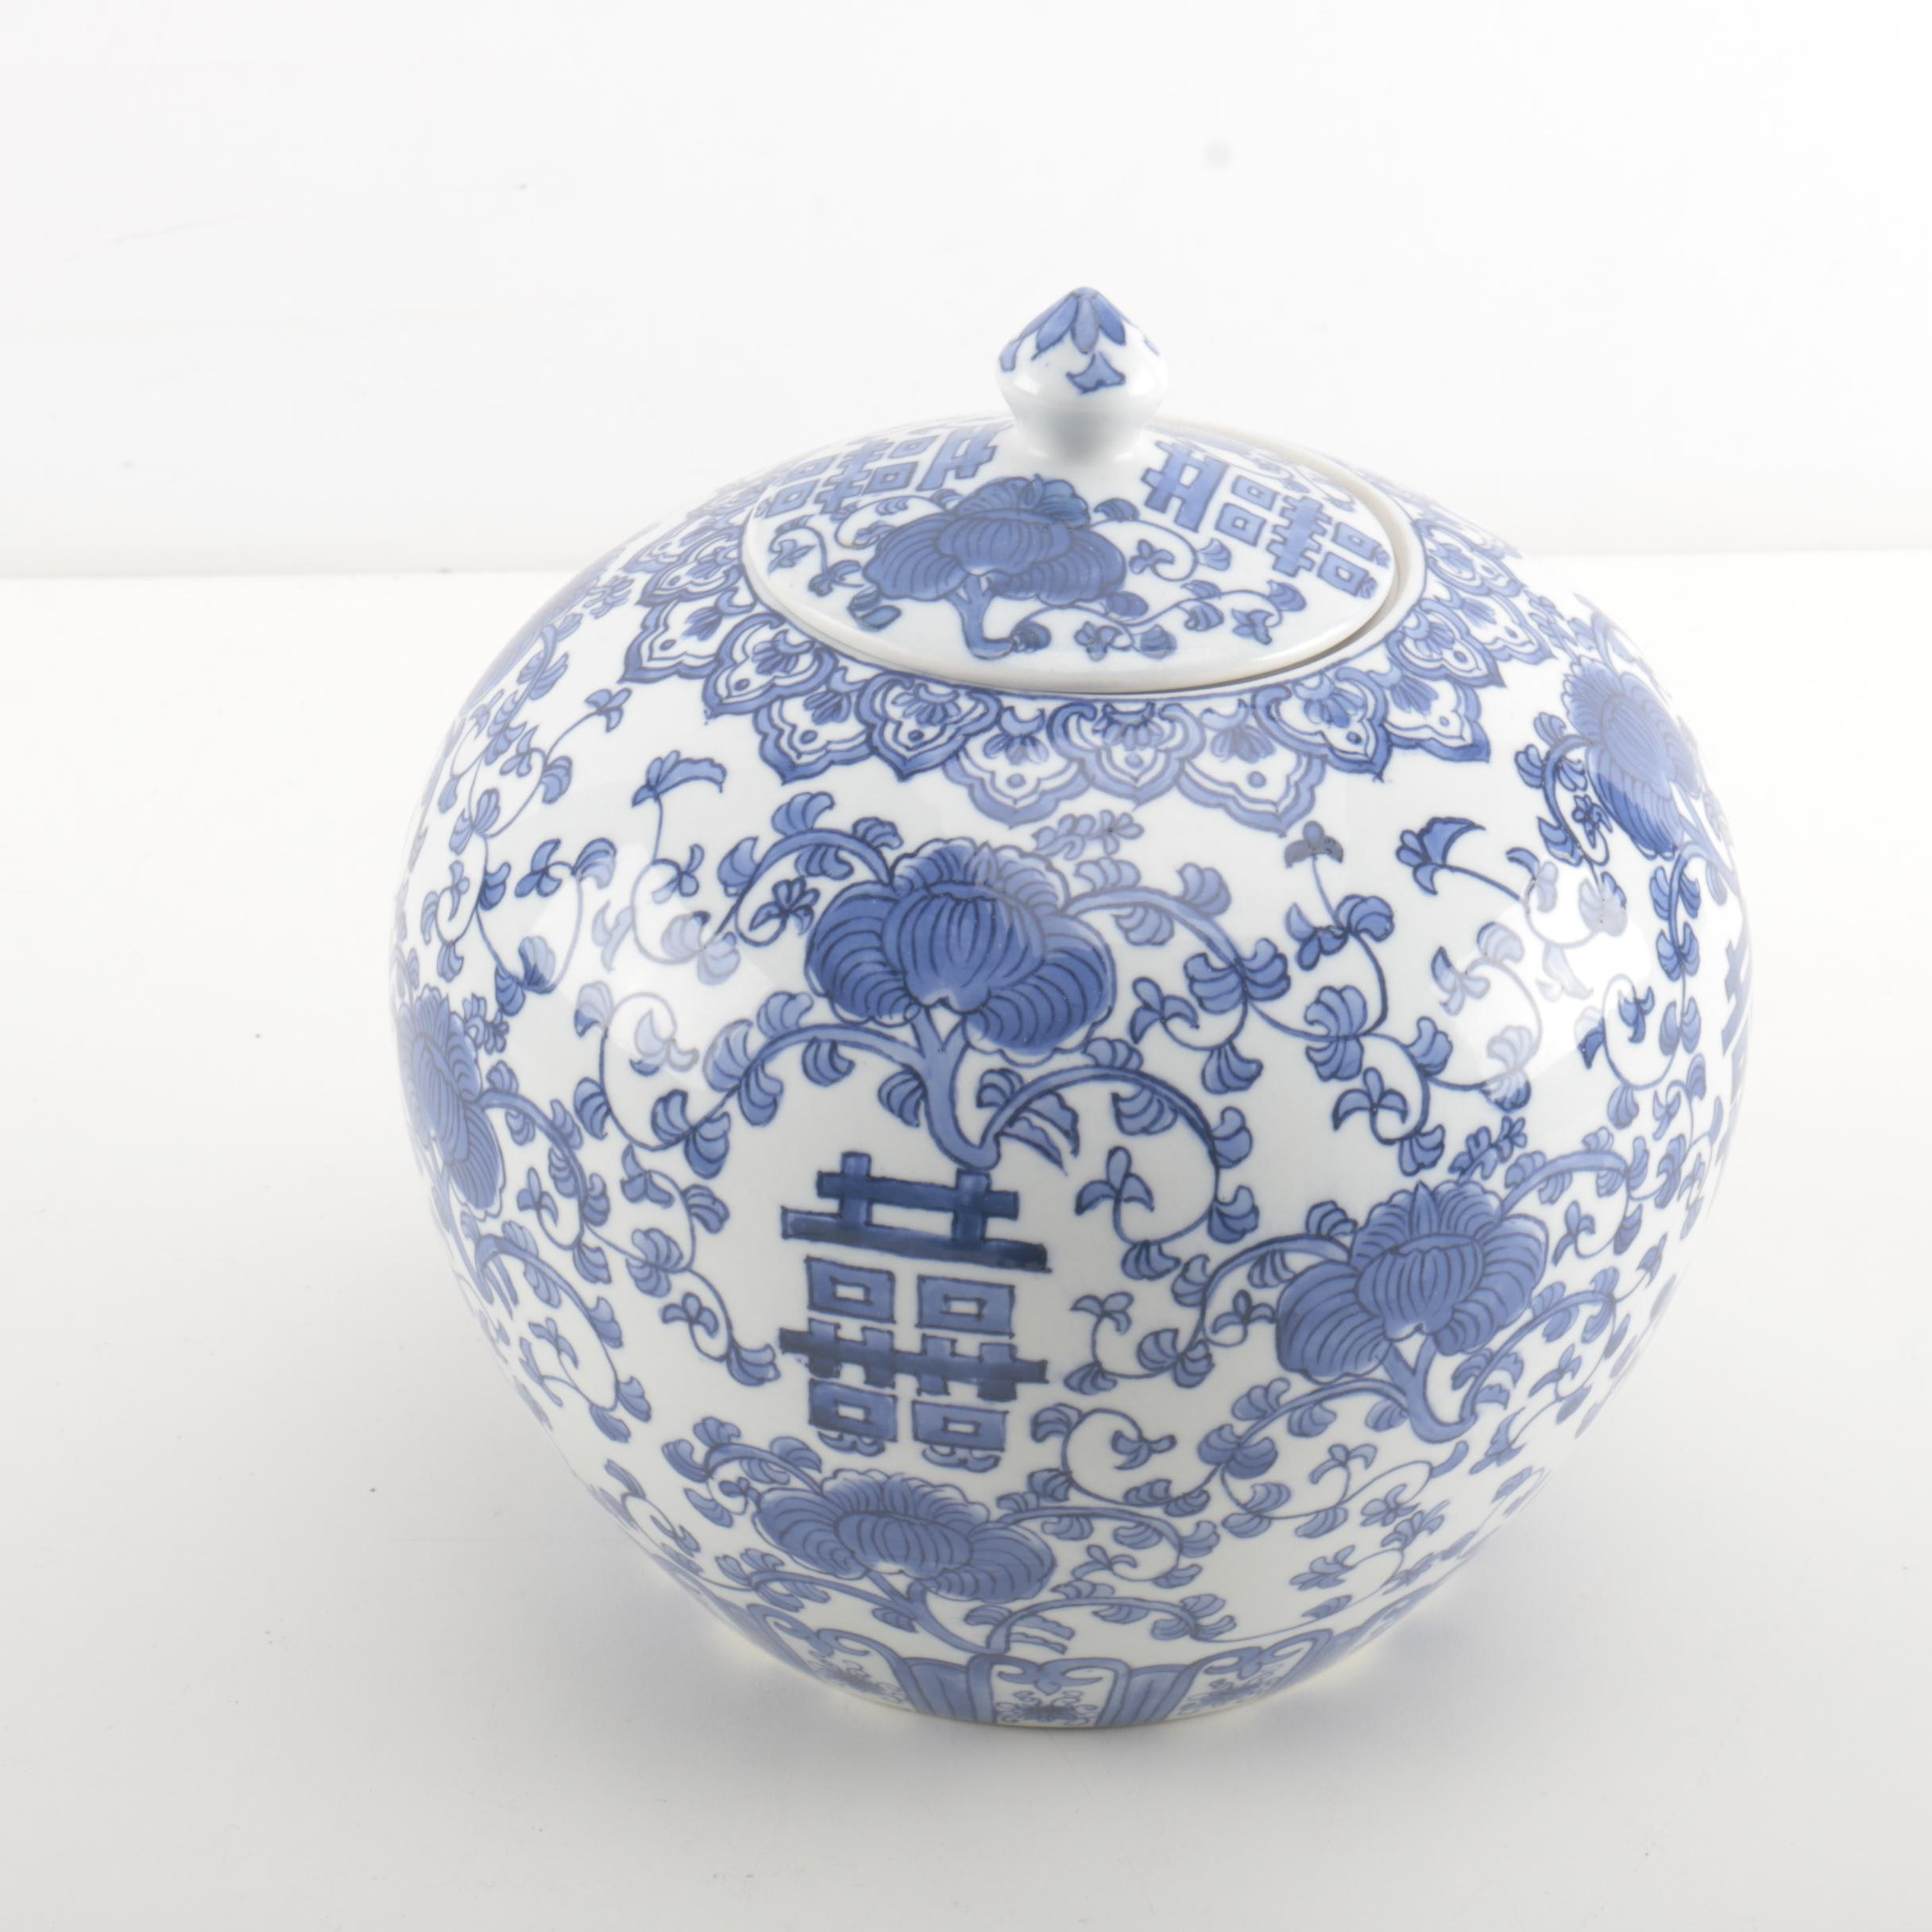 Chinese Double Happiness Porcelain Vase